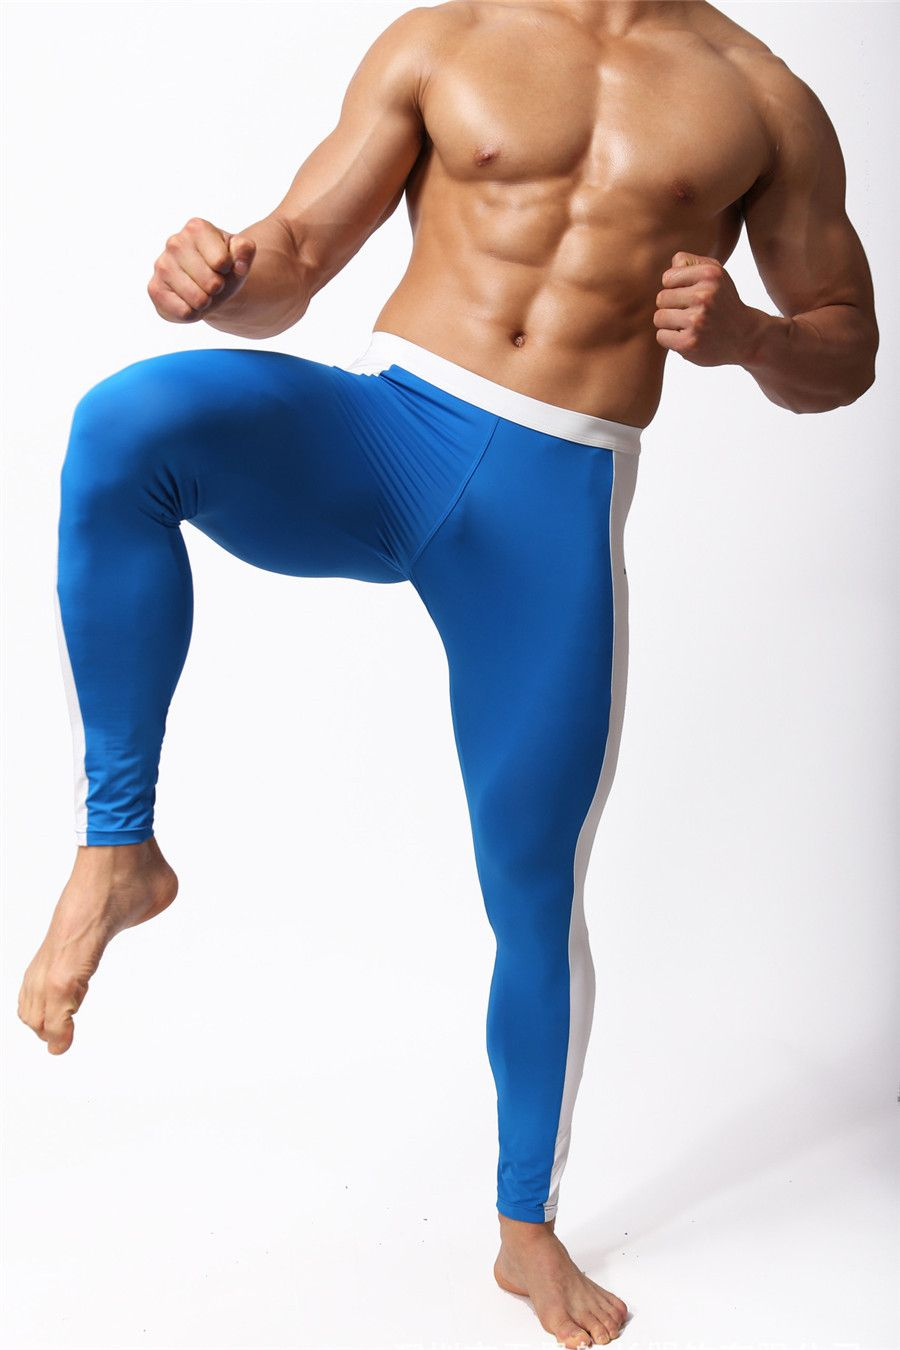 e813ca0edacb Mens Mesh See-thru Underwear Leggings with size chart | 500Stylesproducts |  Mens compression pants, Underwear, Pants